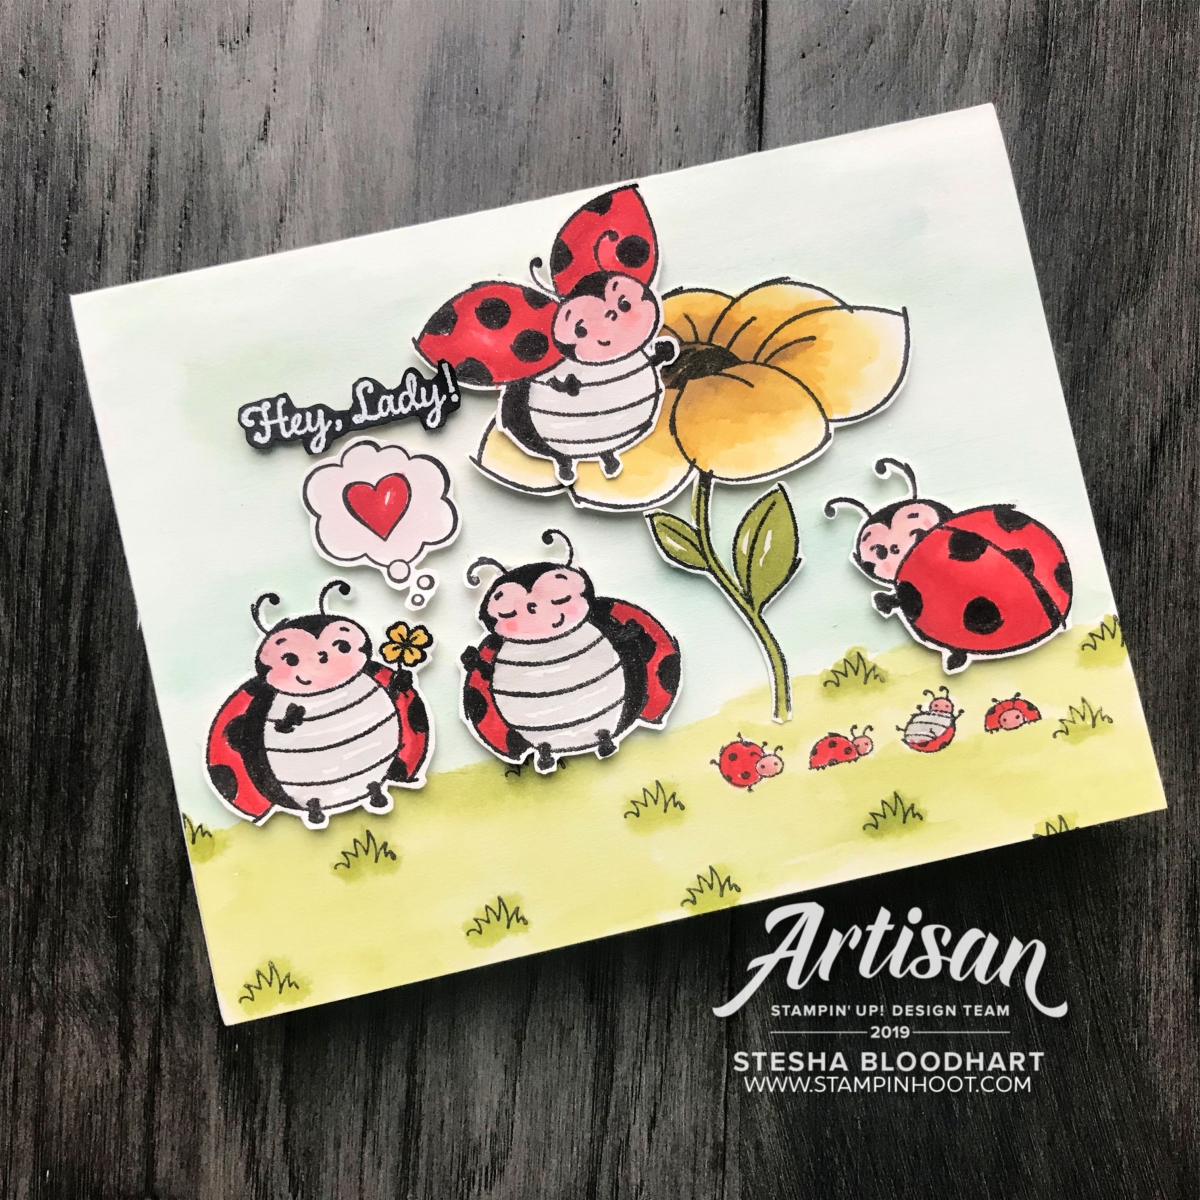 Little Ladybug Cling Stamp Set - Sale-a-Bration - Stampin' Rewards Only - Free with $300 Order - Stesha Bloodhart, Stampin' Hoot! 2019 Artisan Design Team Blog Hop